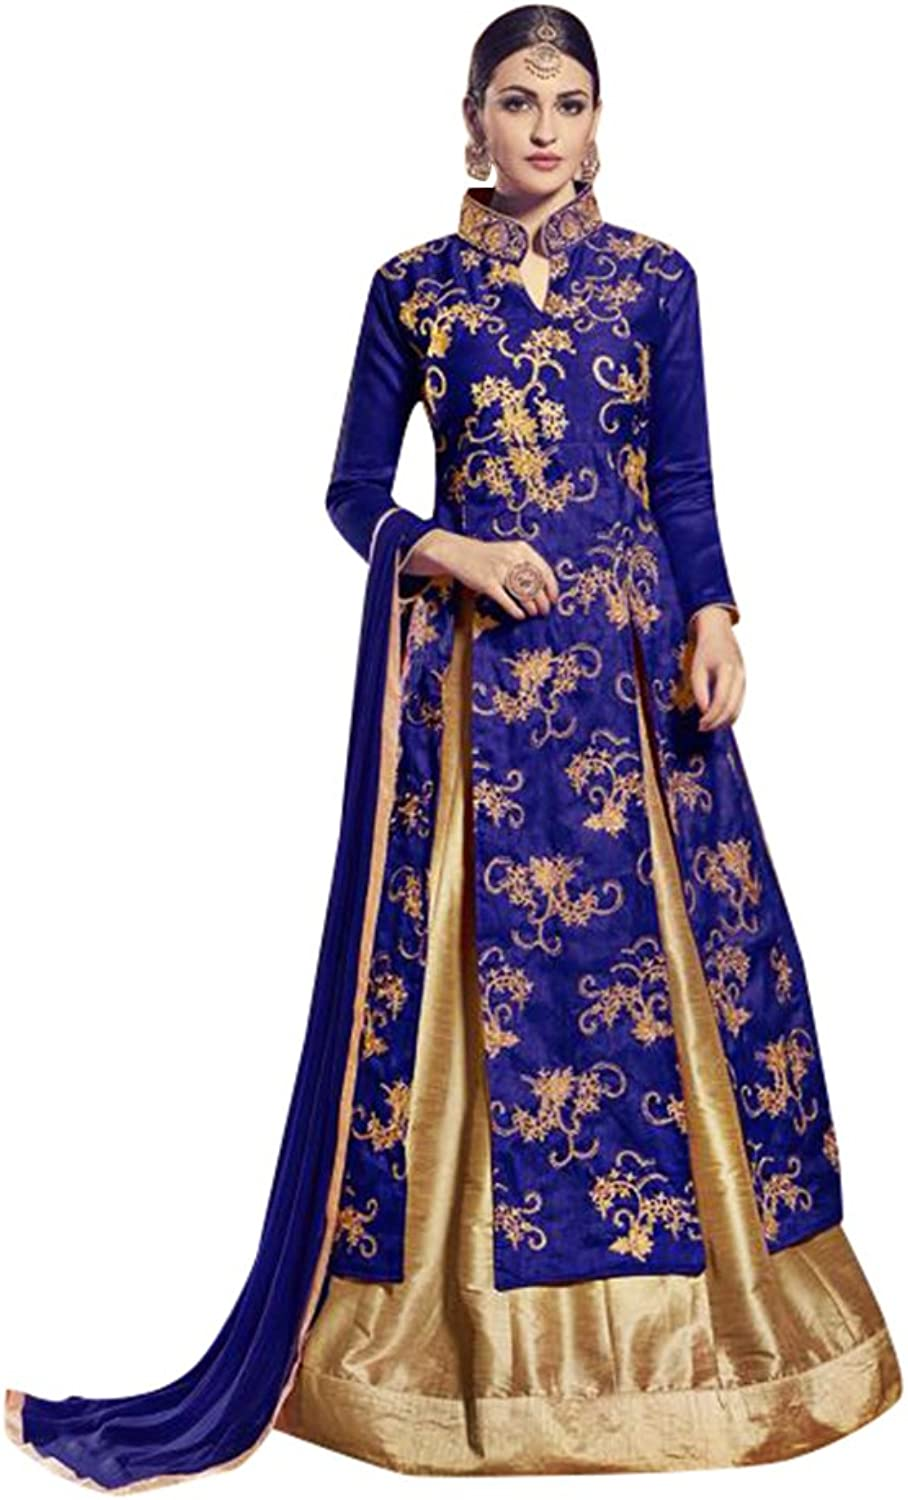 Bollywood Collection Anarkali Salwar Kameez Suit Ceremony Bridal Muslin 704 12